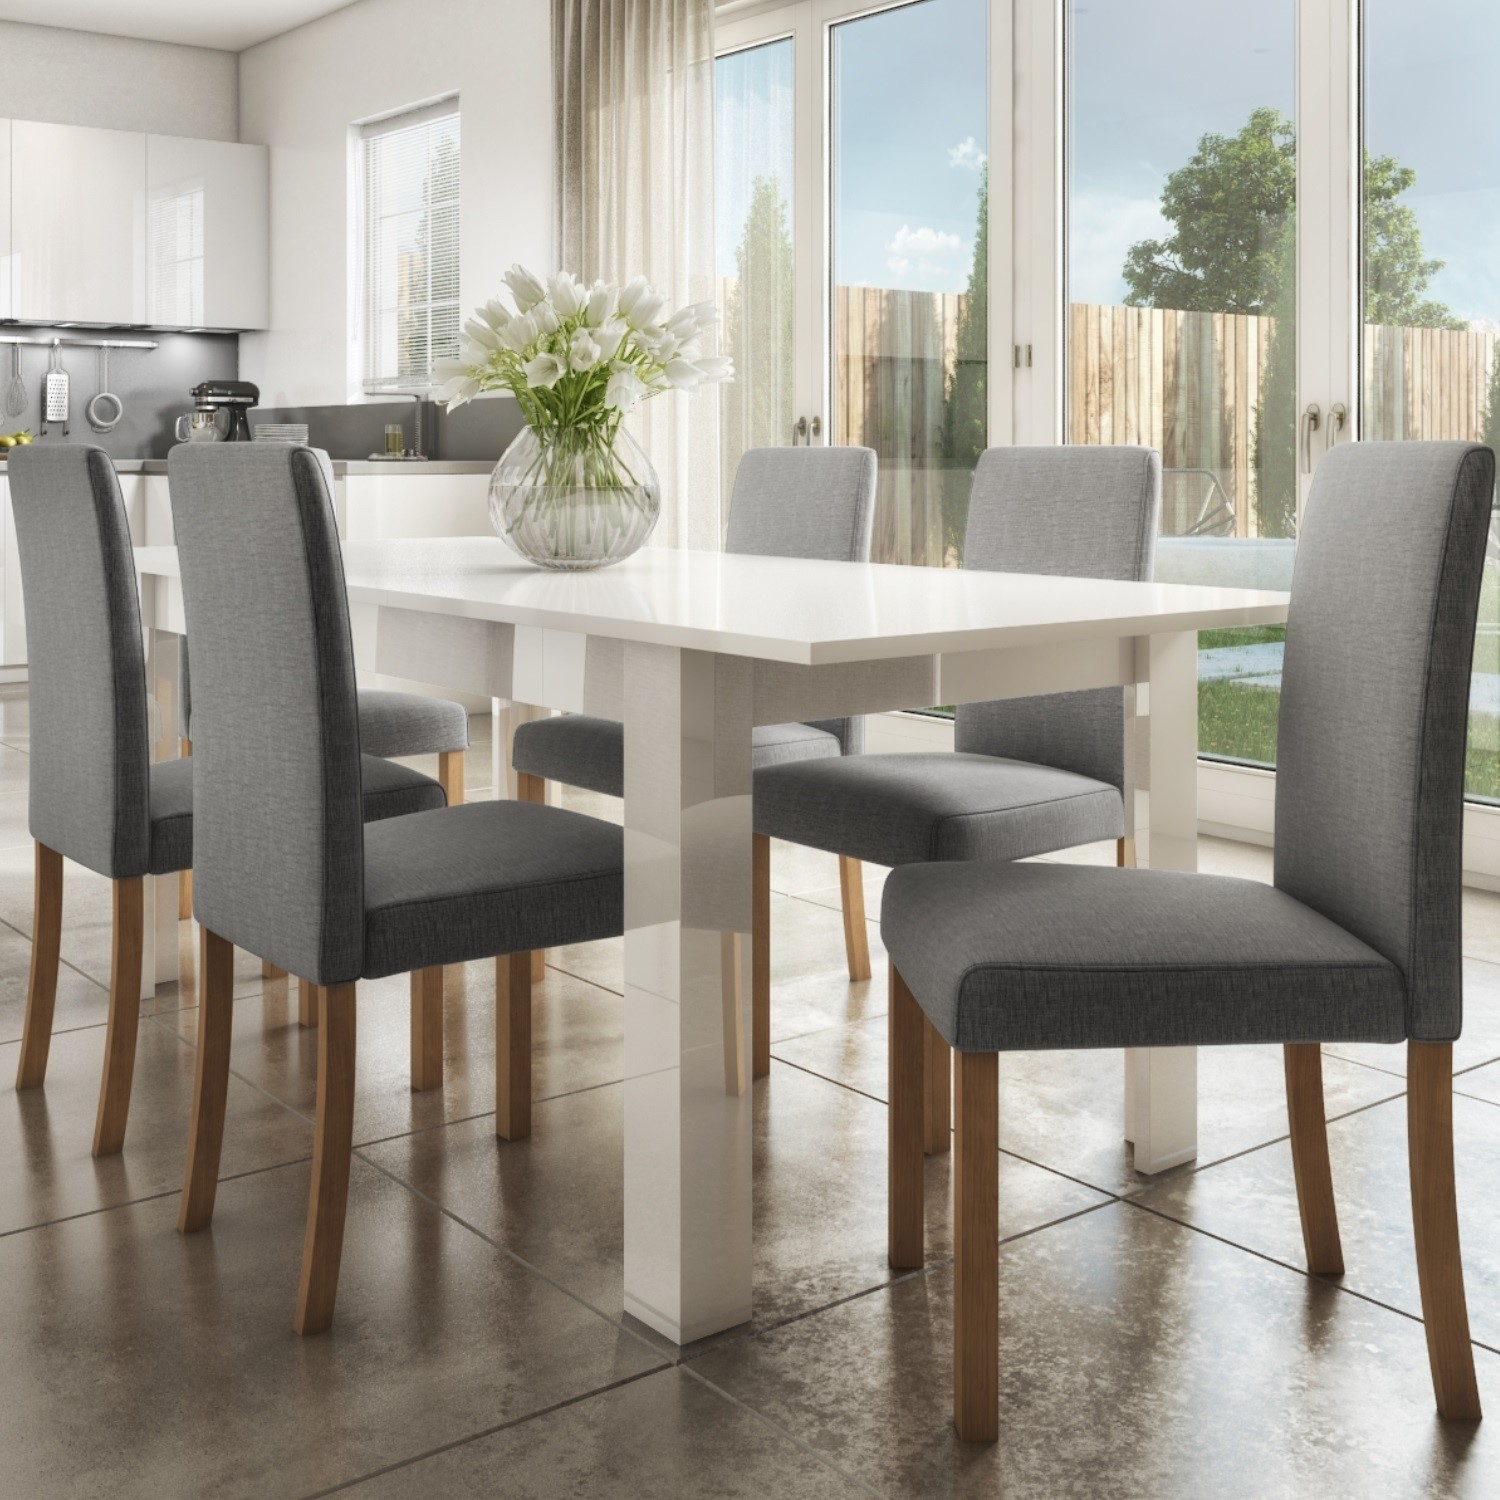 Extendable Dining Table in White High Gloss with 10 Grey Chairs - Vivienne &  New Haven